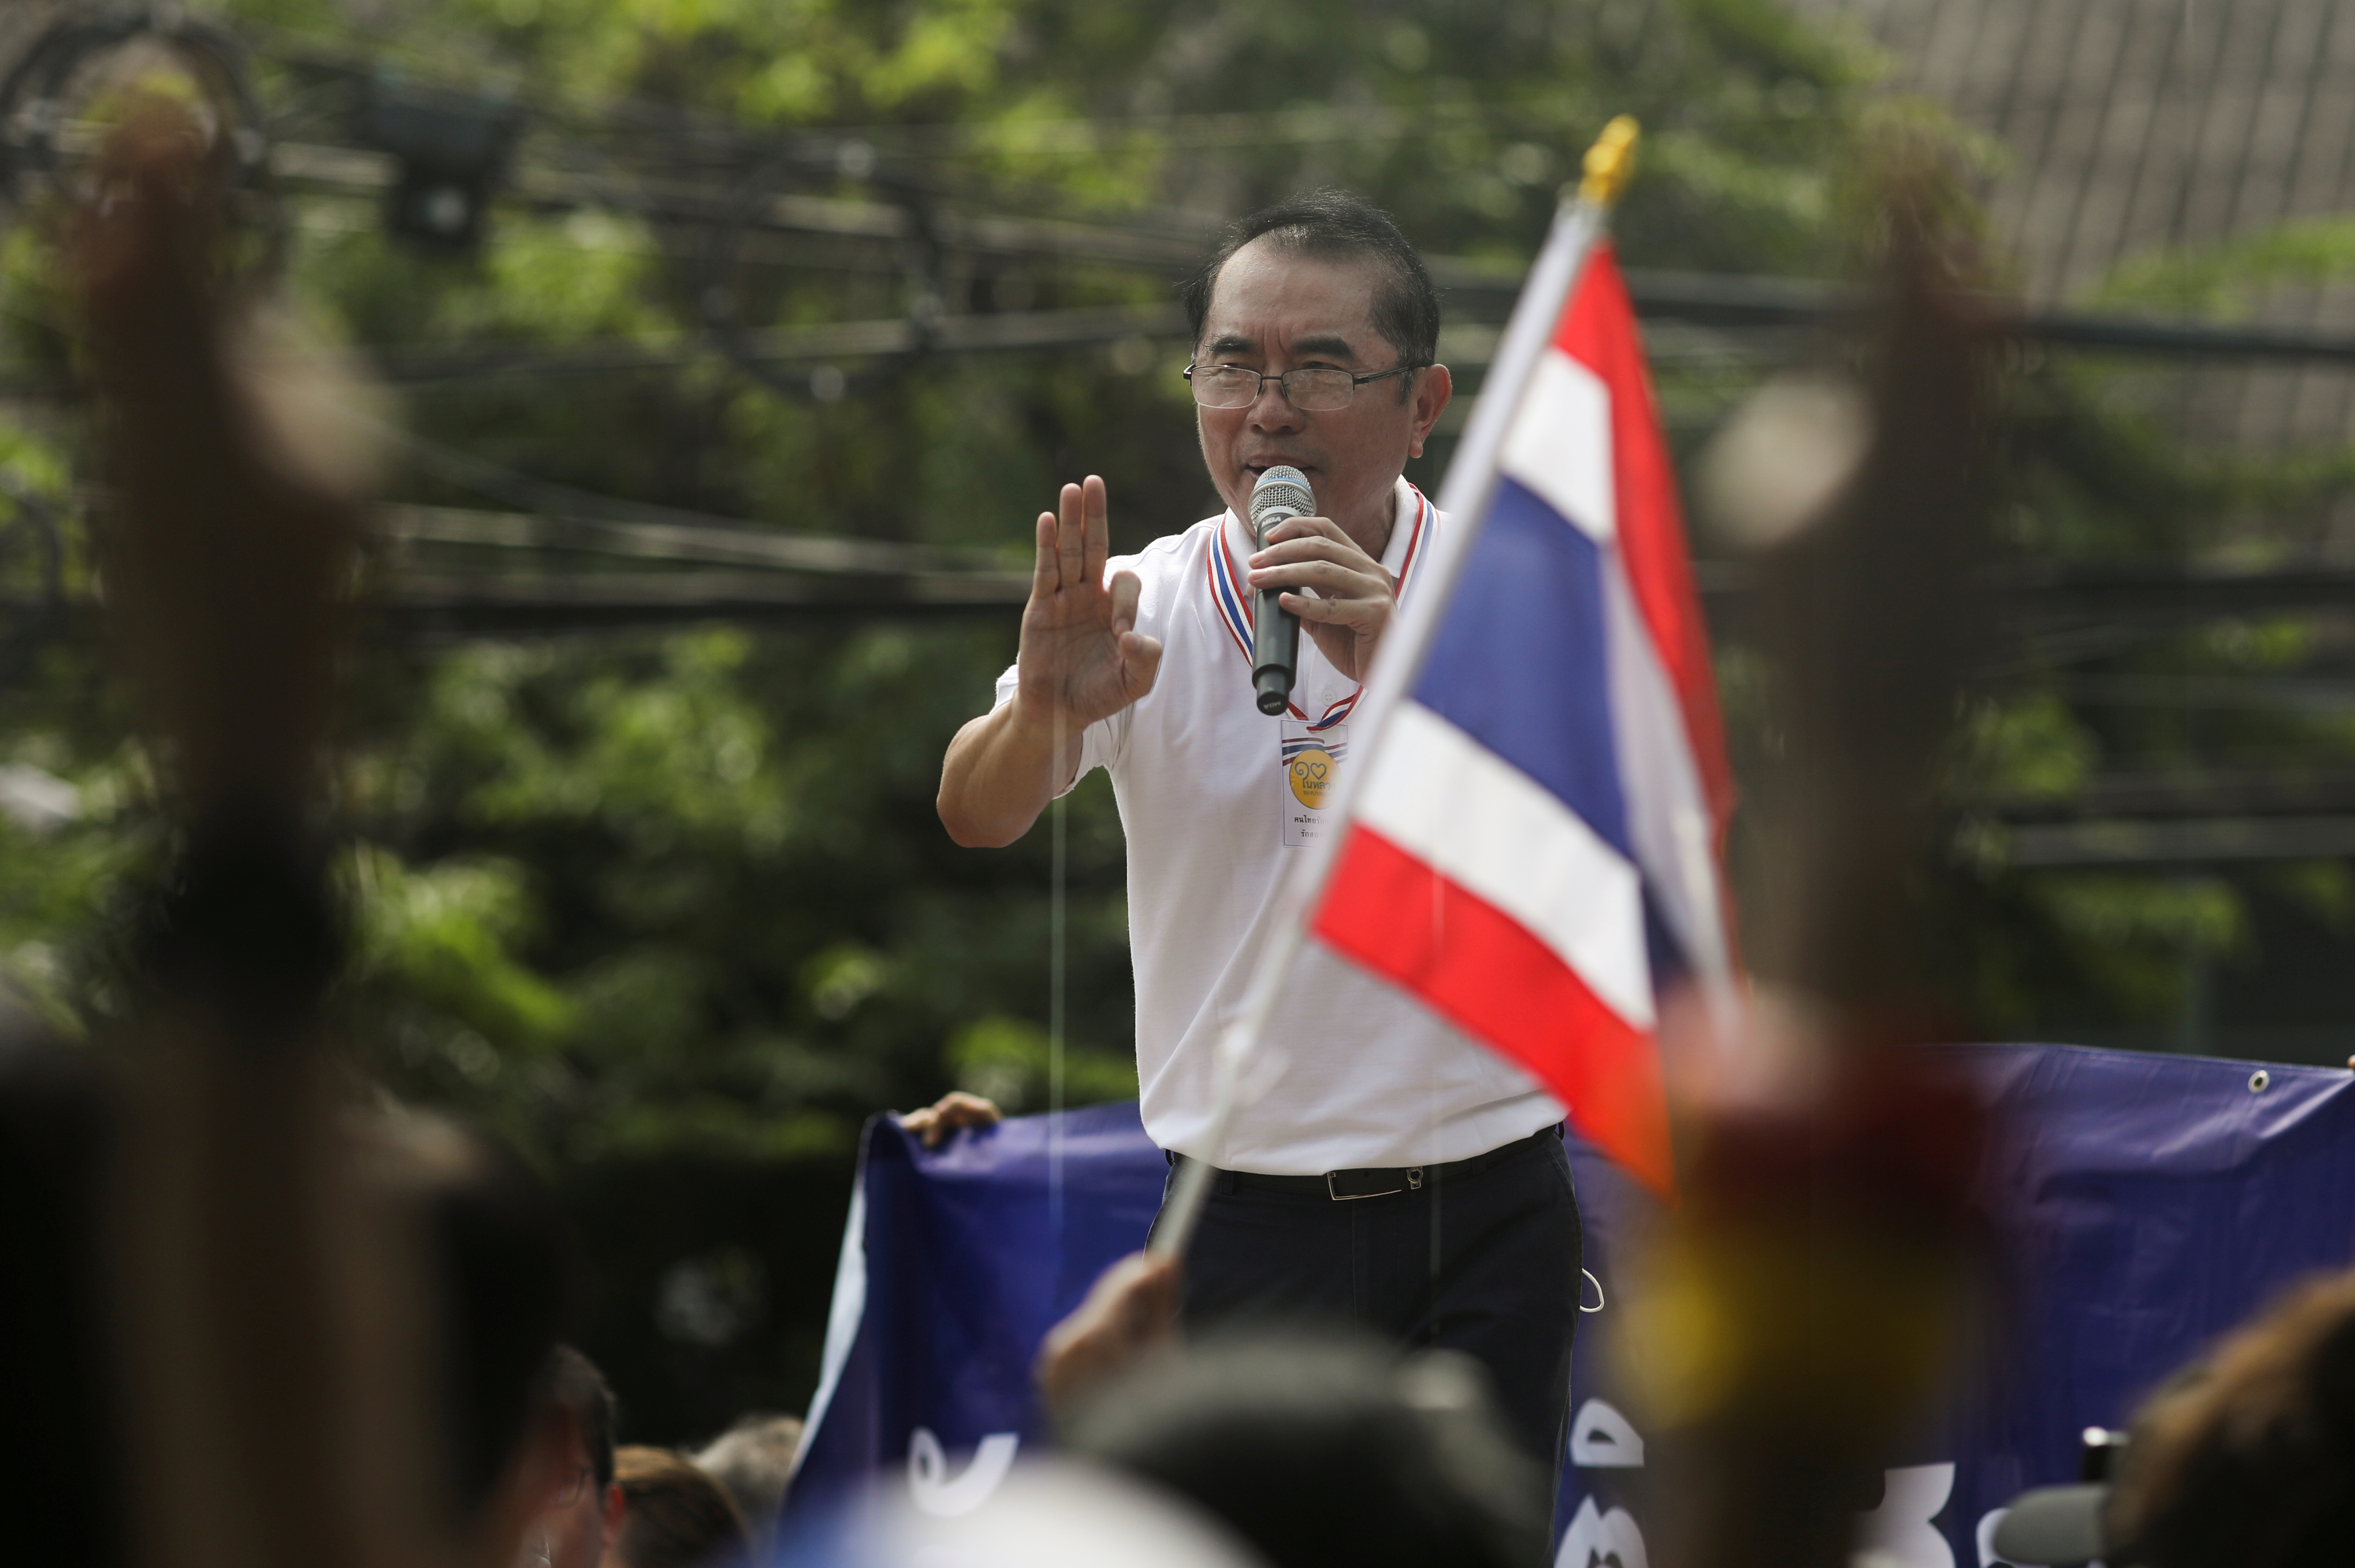 Warong Dechgitvigrom speaks during a protest by a group of royalists in front of parliament as they counter protest pro-democracy demonstrators and show support to the monarchy in Bangkok, Thailand September 23, 2020. REUTERS/Soe Zeya Tun/File Photo